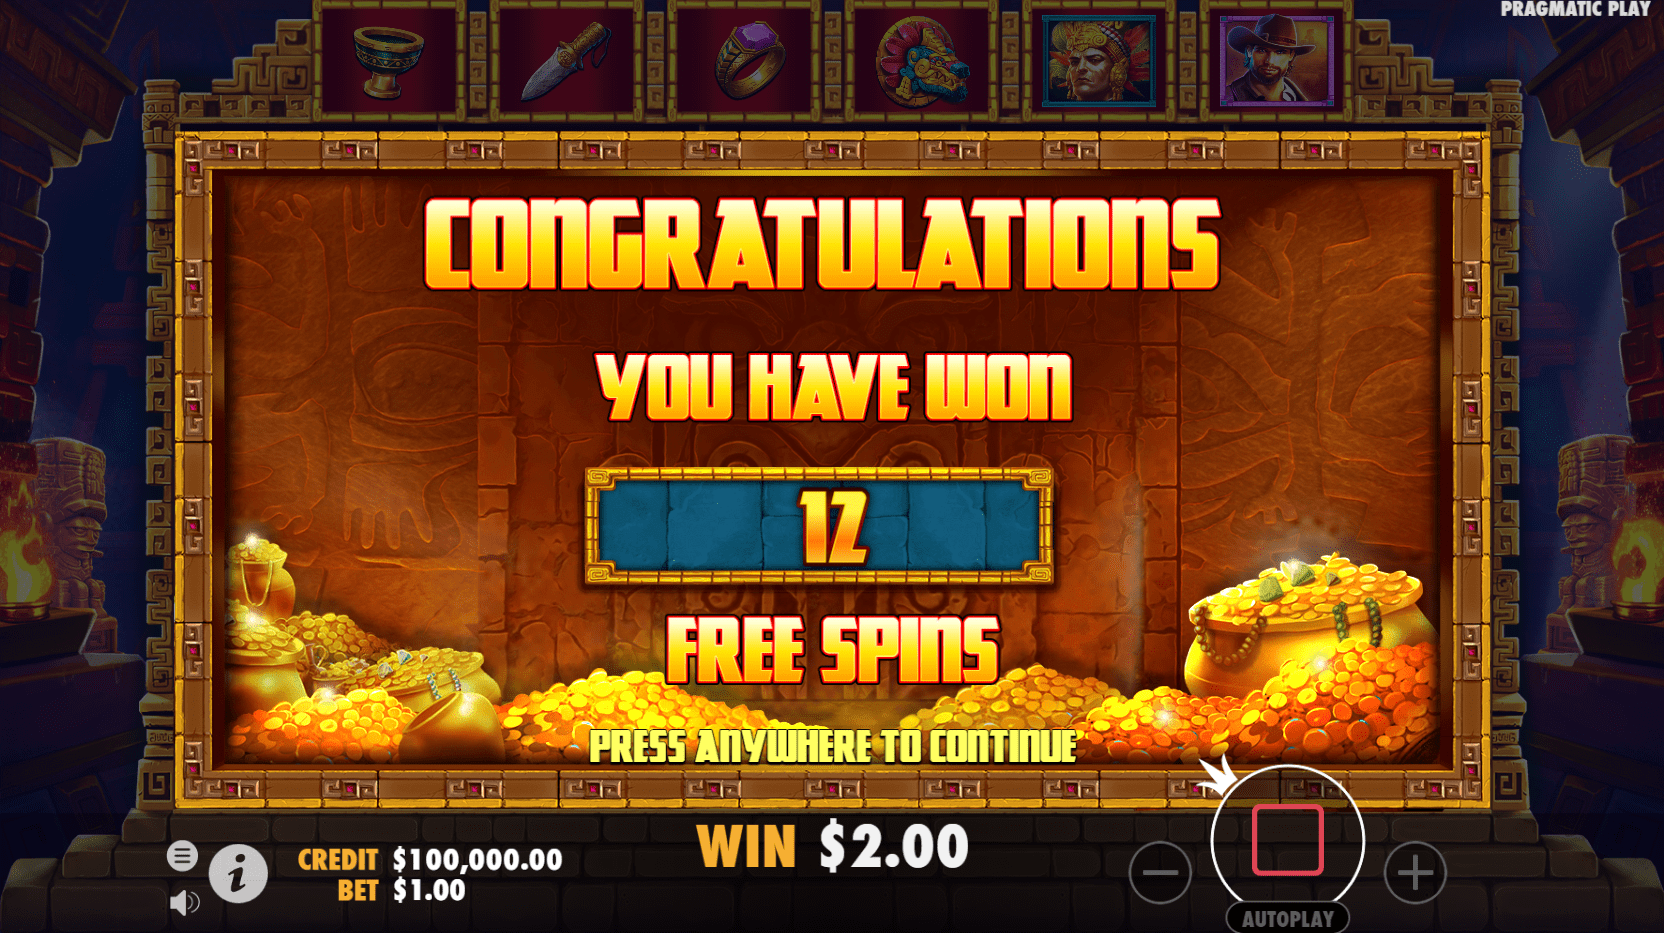 John Hunter and the Mayan Gods video slot 12 free spins